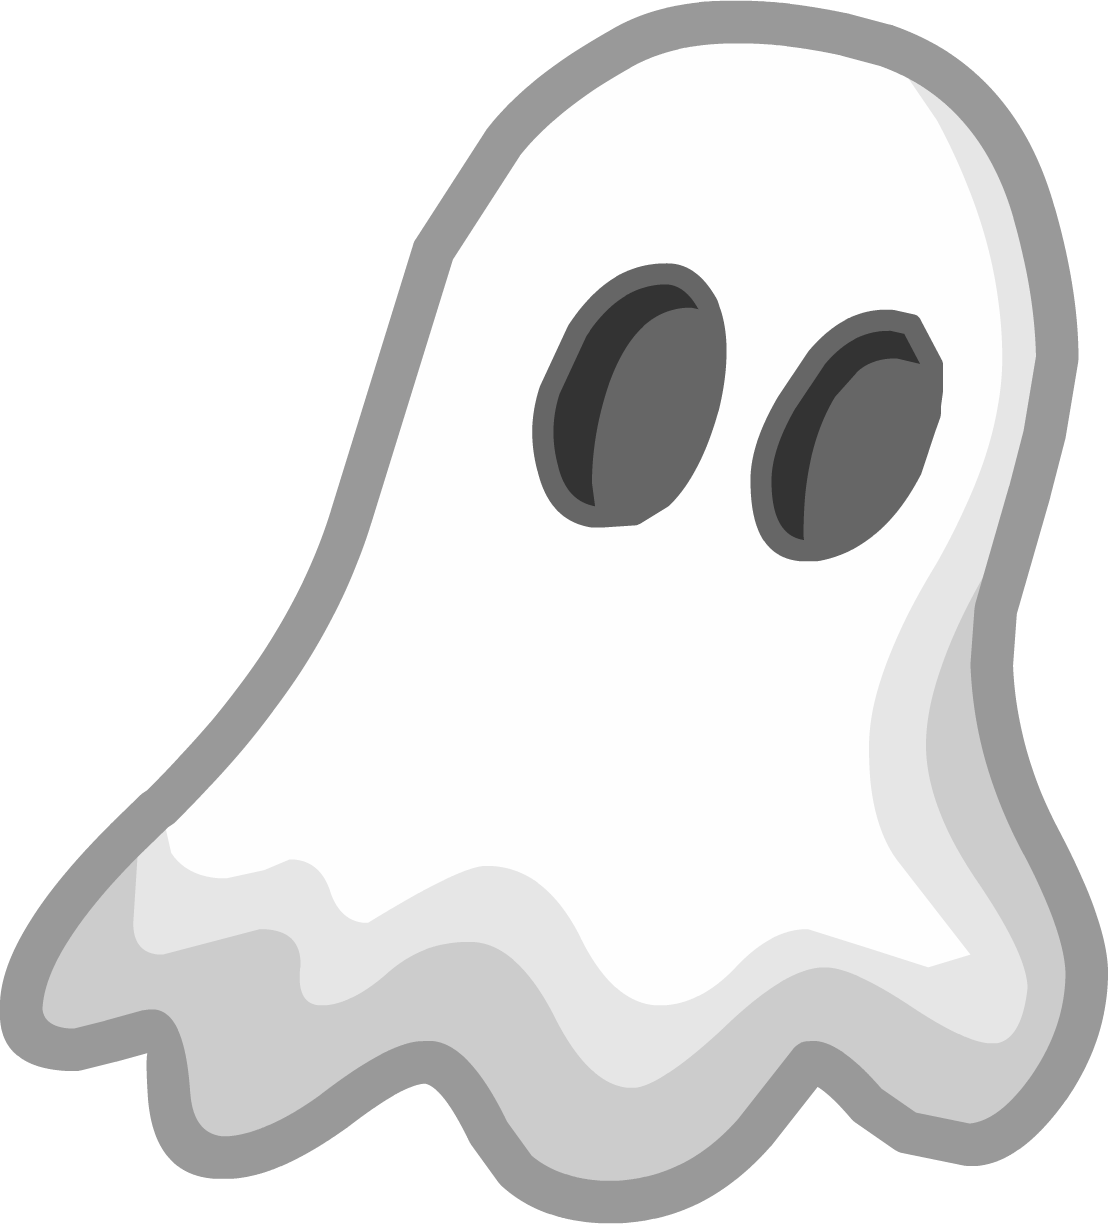 Halloween 2013 Emoticons Ghost.png - Ghost, Transparent background PNG HD thumbnail